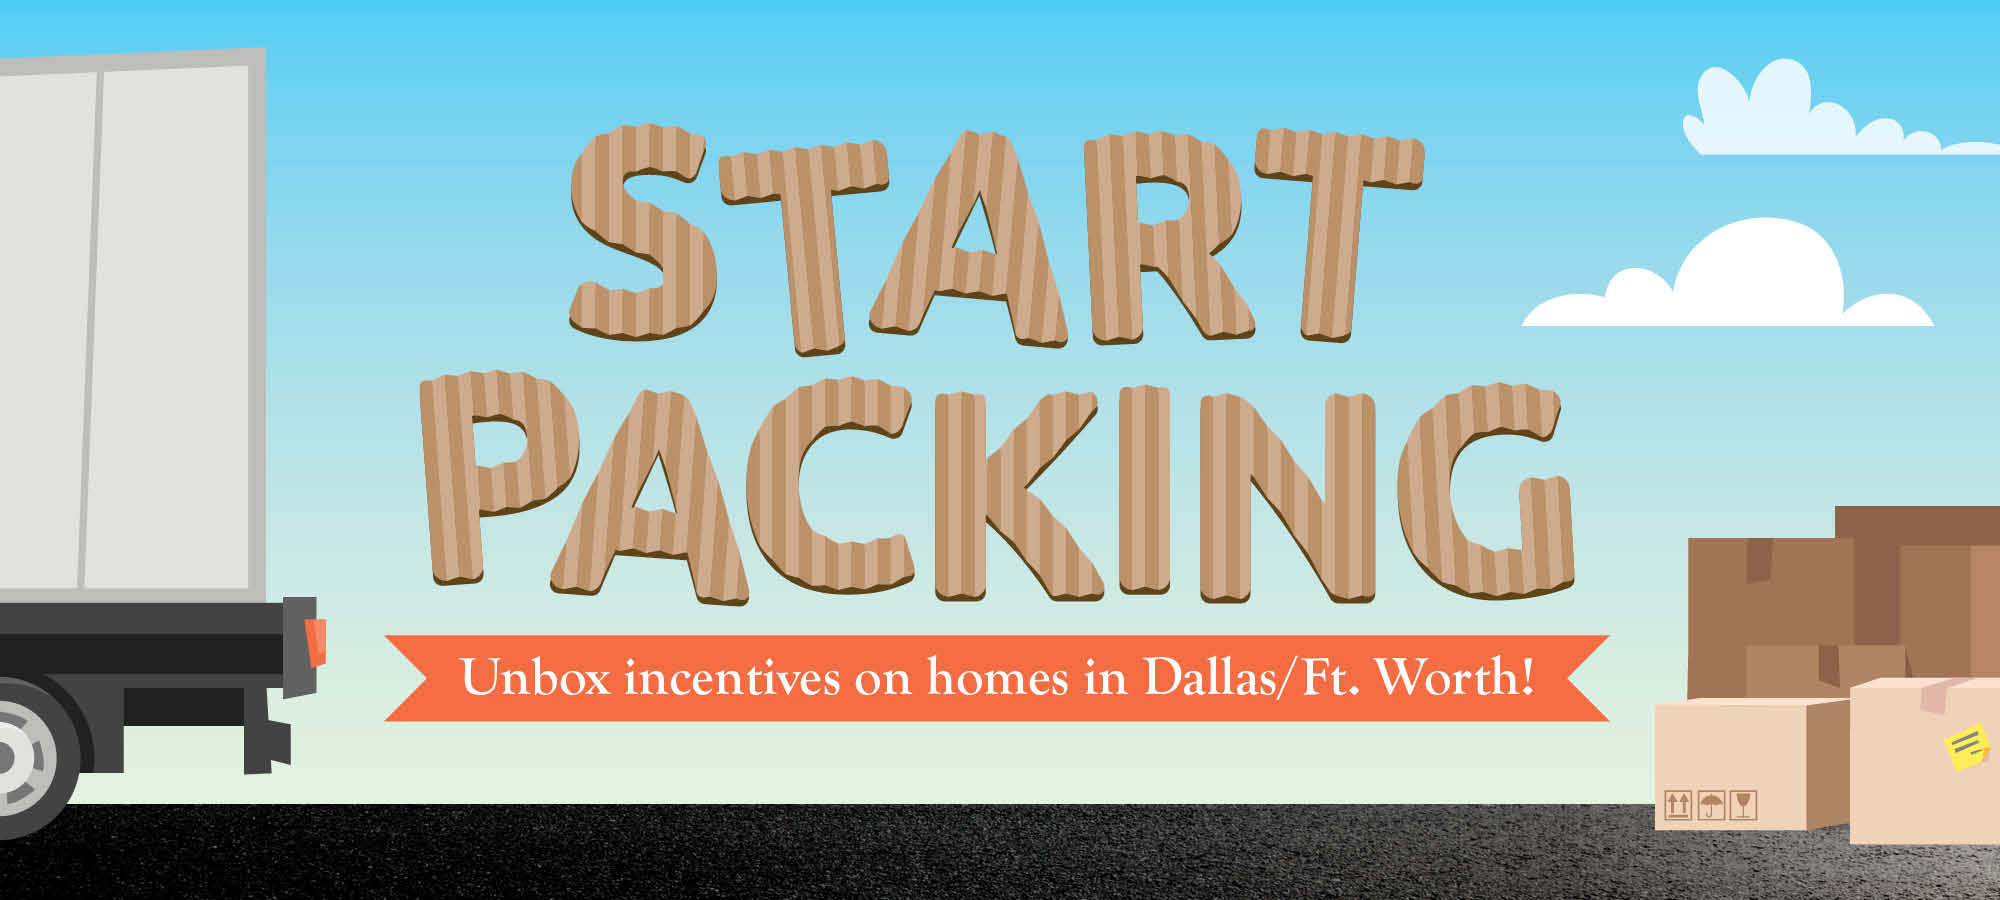 Start Packing - Move on these limited-time incentives today!